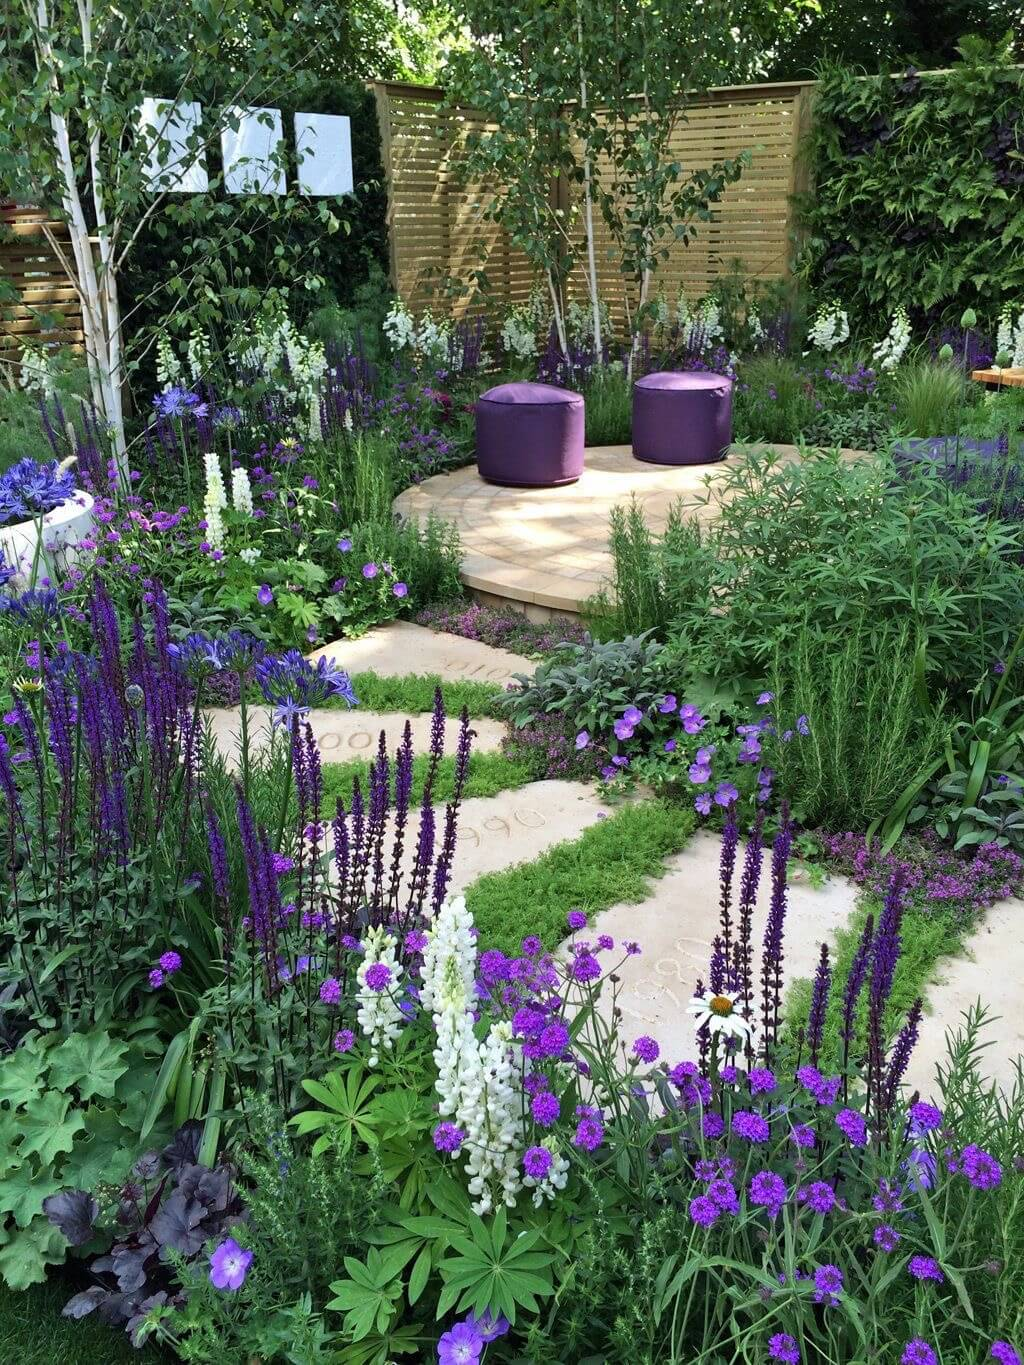 Stone Garden Path Ideas 32 natural and creative stone garden path ideas gardenoholic Simple Stone Pathway Sets Off Beautiful Plants